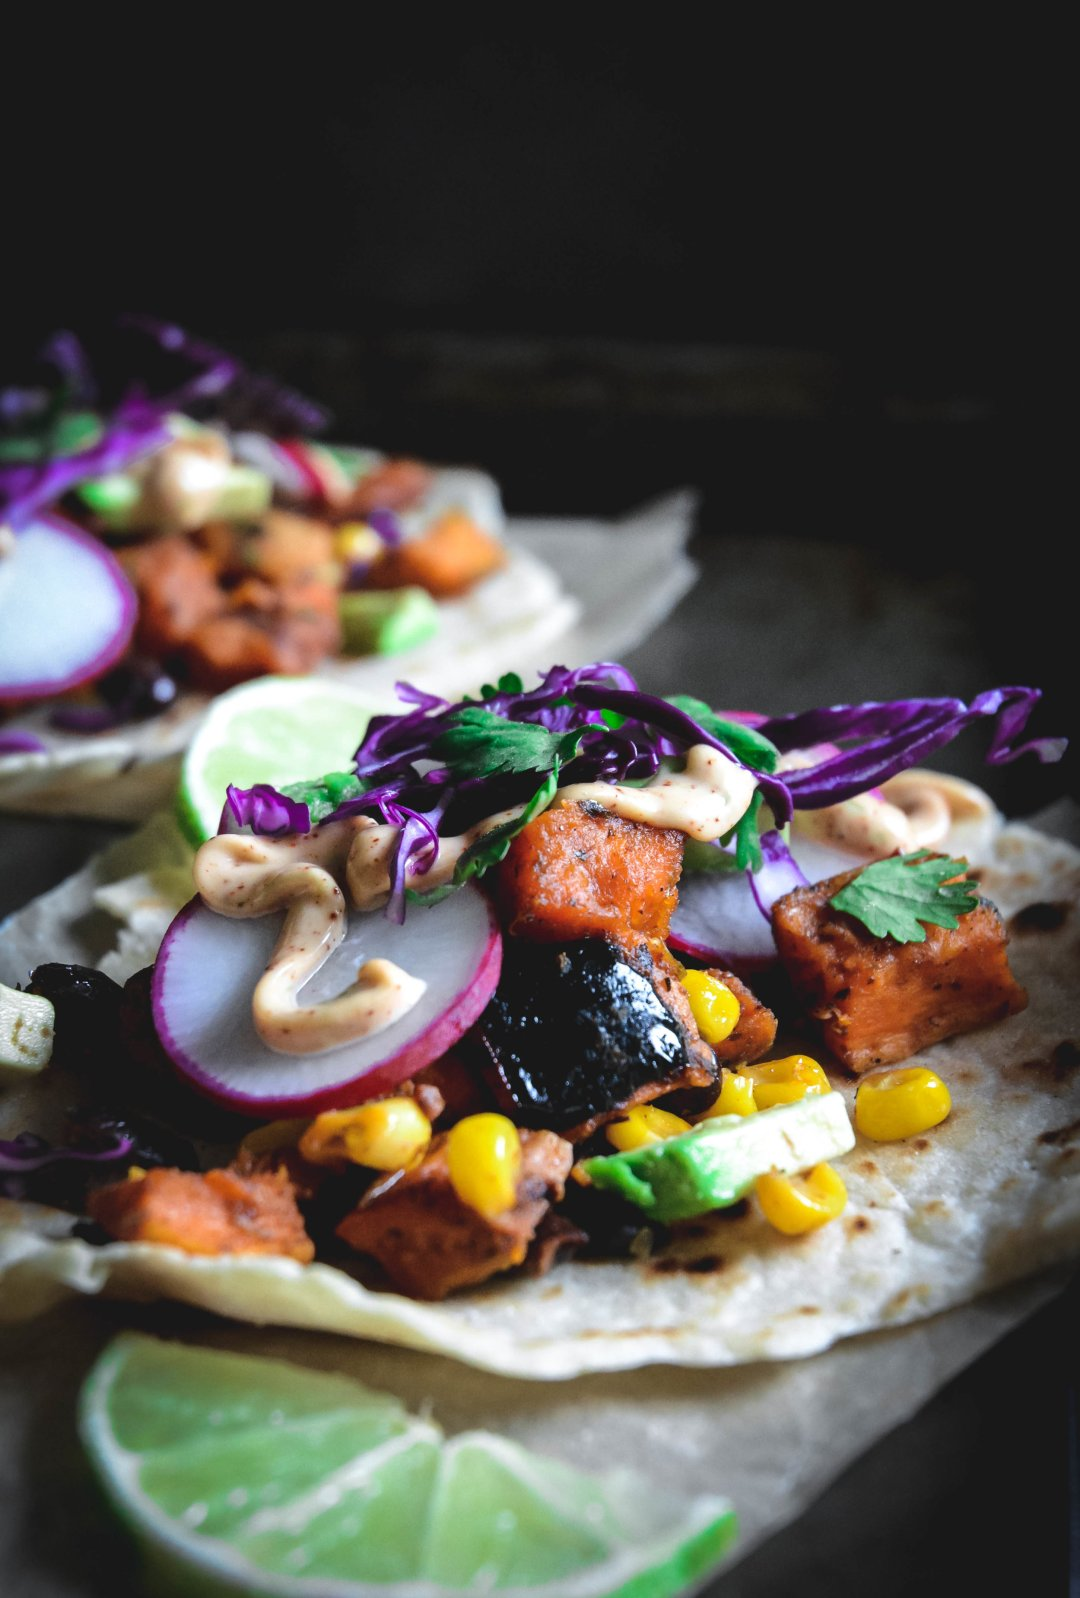 roasted vegetable tacos with radish, avocado, purple cabbage